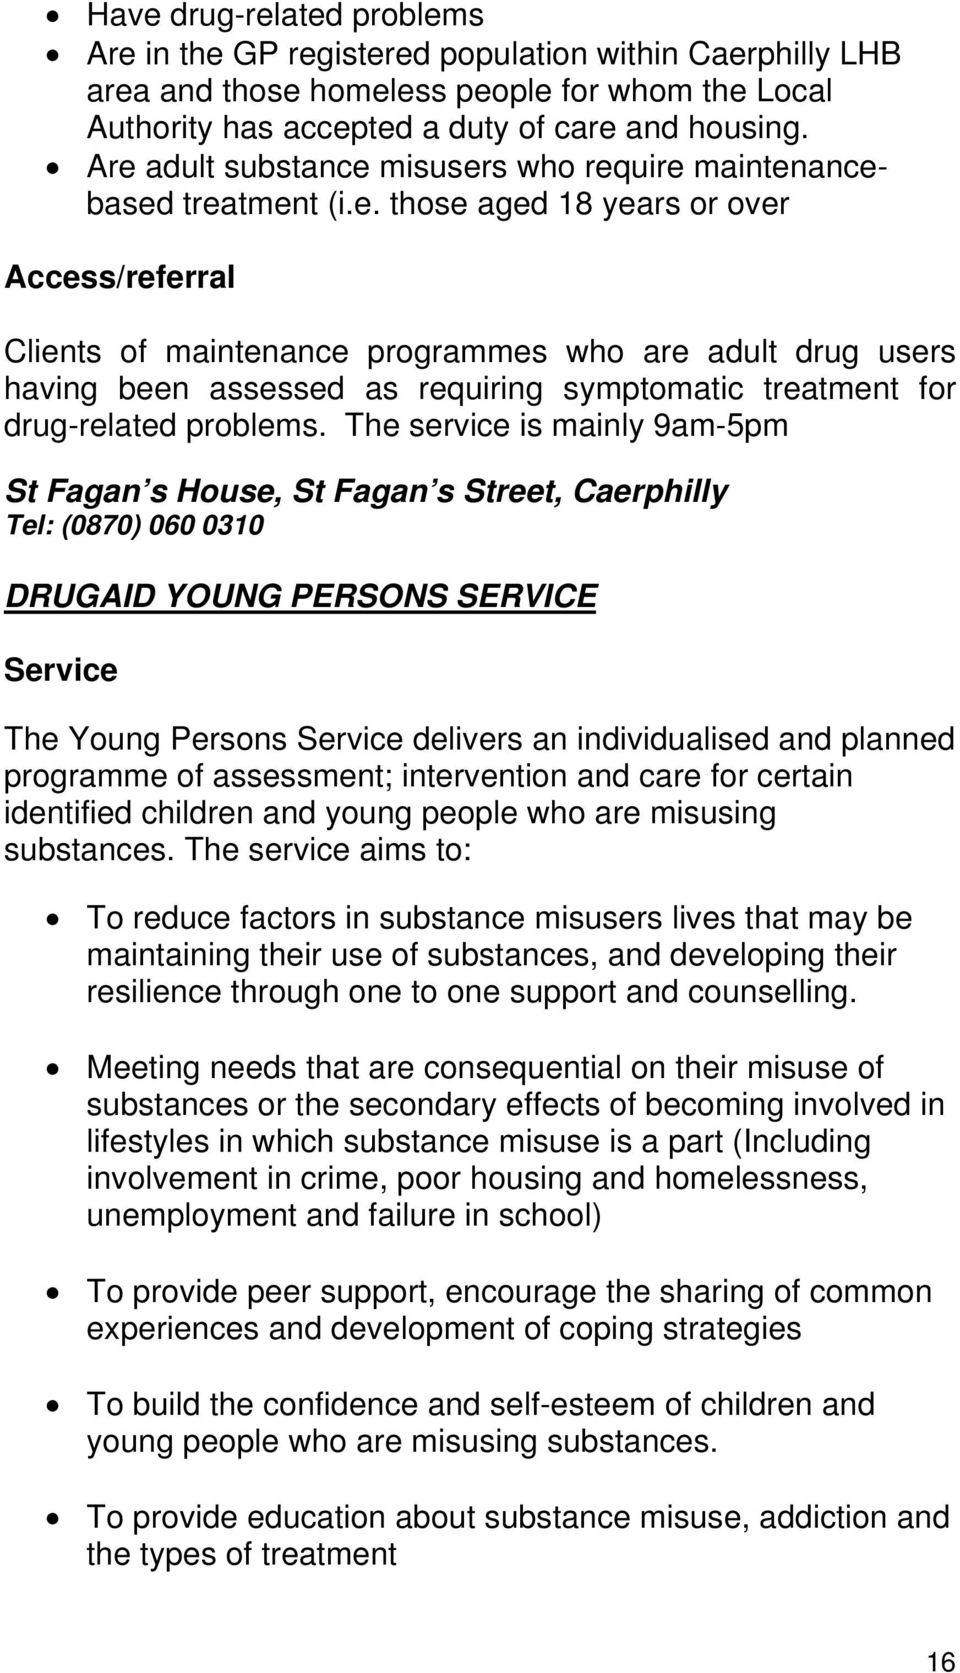 The service is mainly 9am-5pm St Fagan s House, St Fagan s Street, Caerphilly Tel: (0870) 060 0310 DRUGAID YOUNG PERSONS SERVICE The Young Persons delivers an individualised and planned programme of